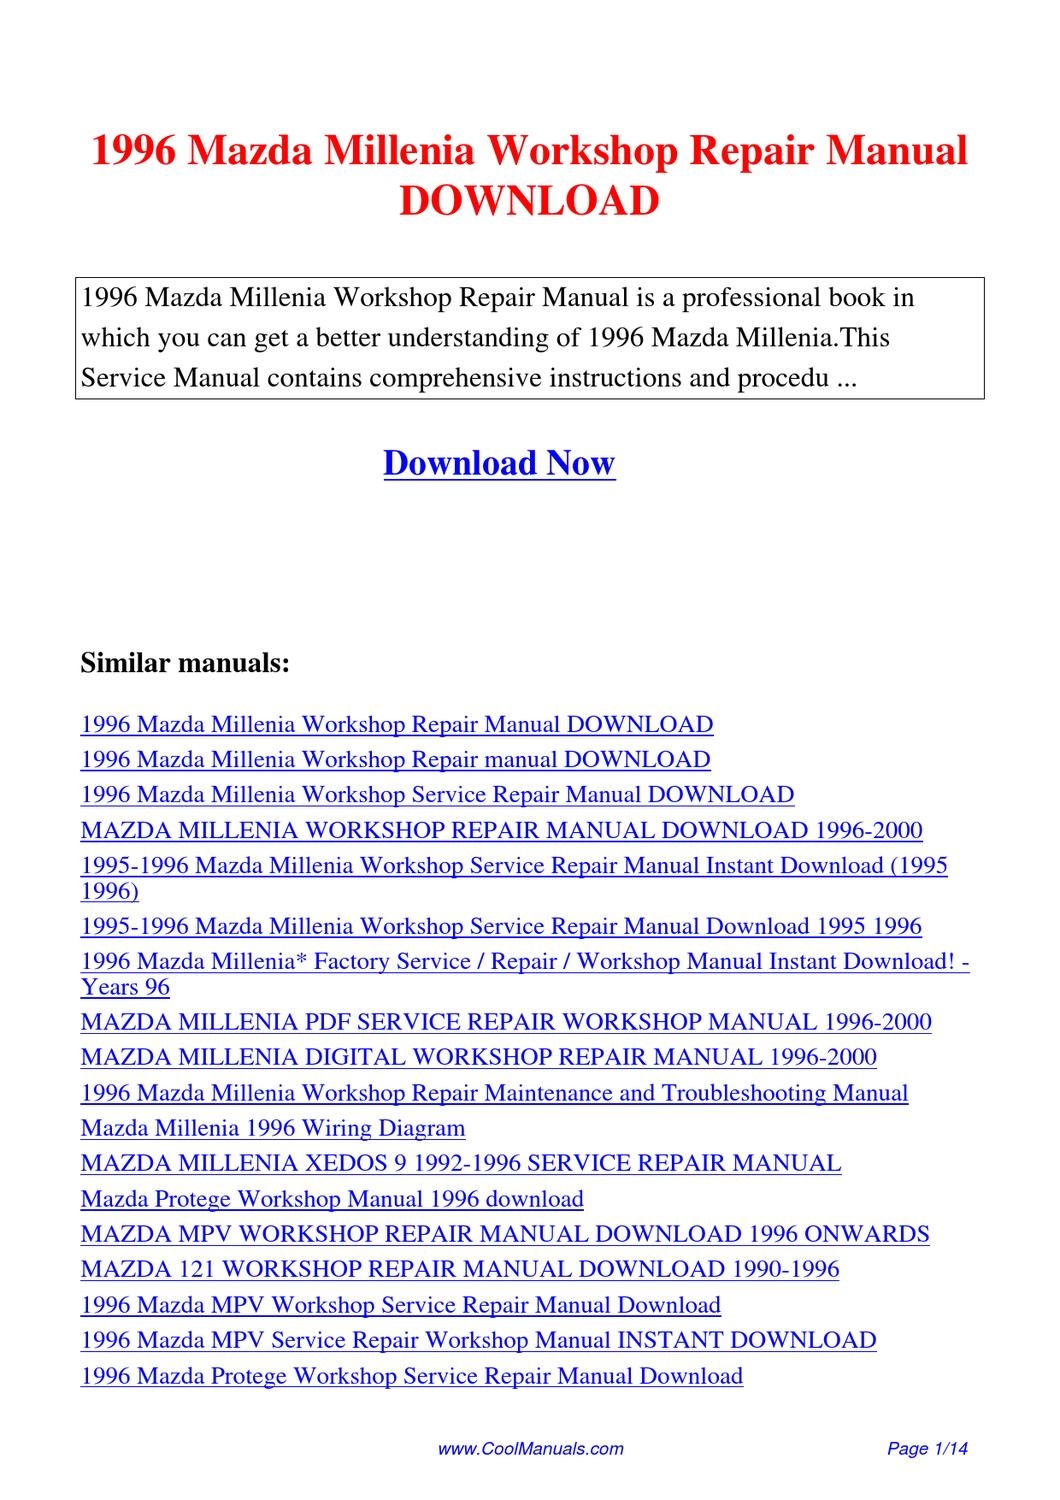 1996 mazda protege wiring diagram 1996_mazda_millenia_workshop_repair_manual by lan huang ... 1997 mazda protege wiring diagram